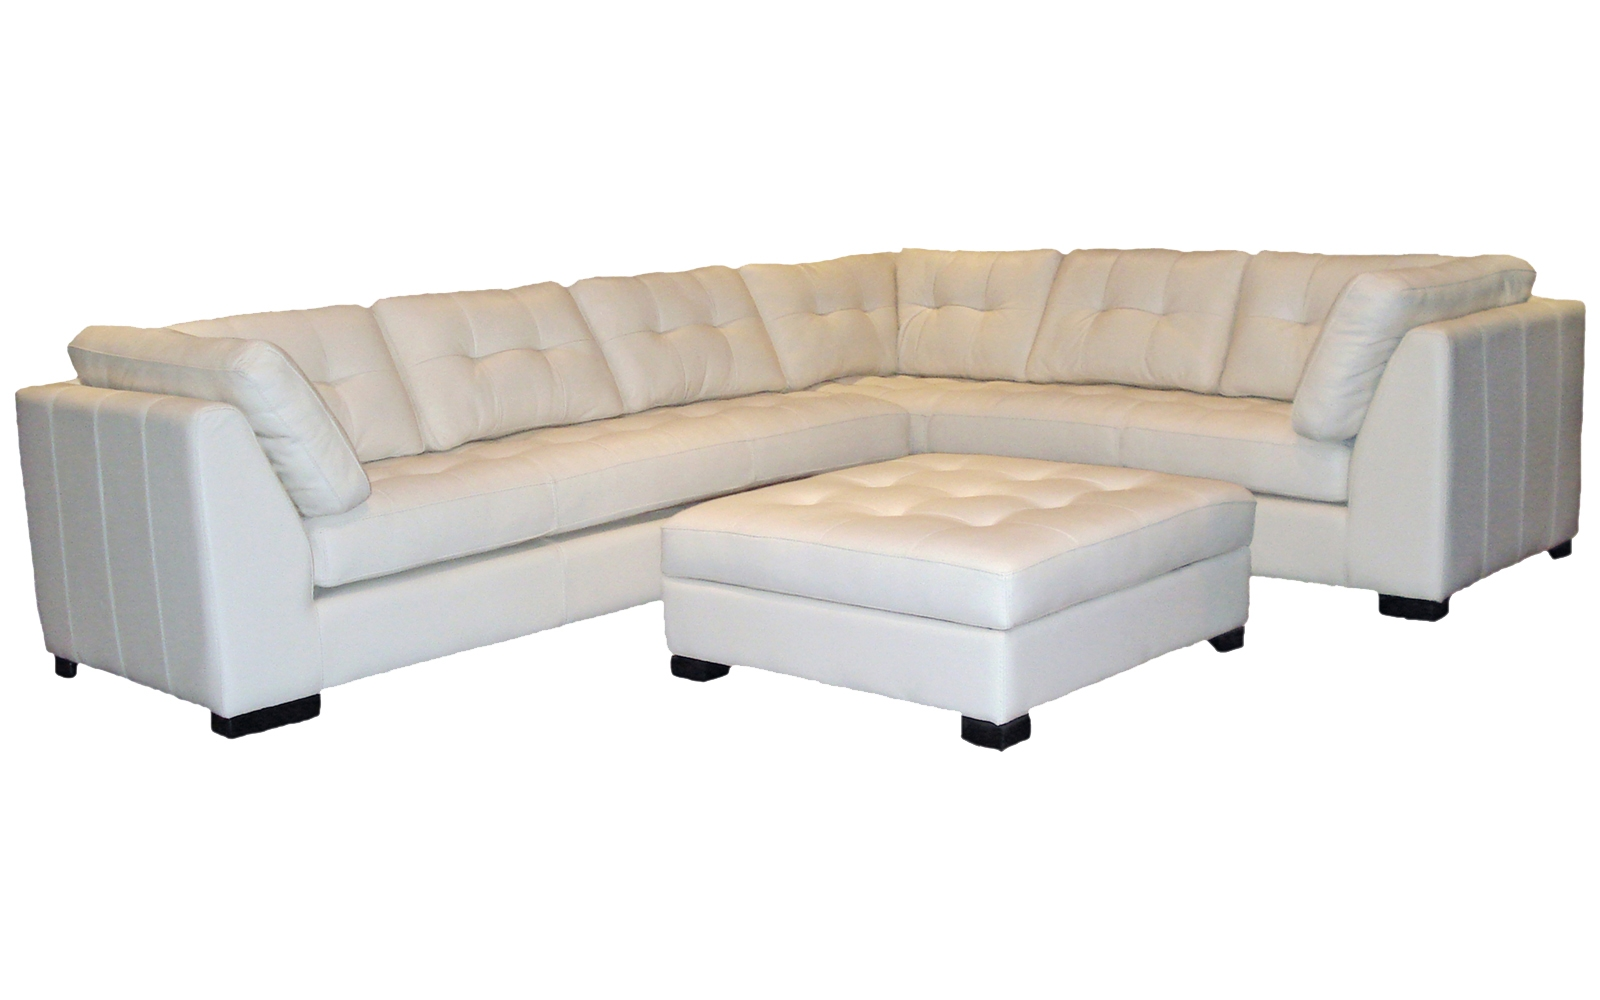 Newport Sofa Available Omnia Leather Inside Newport Sofas (Photo 6 of 15)